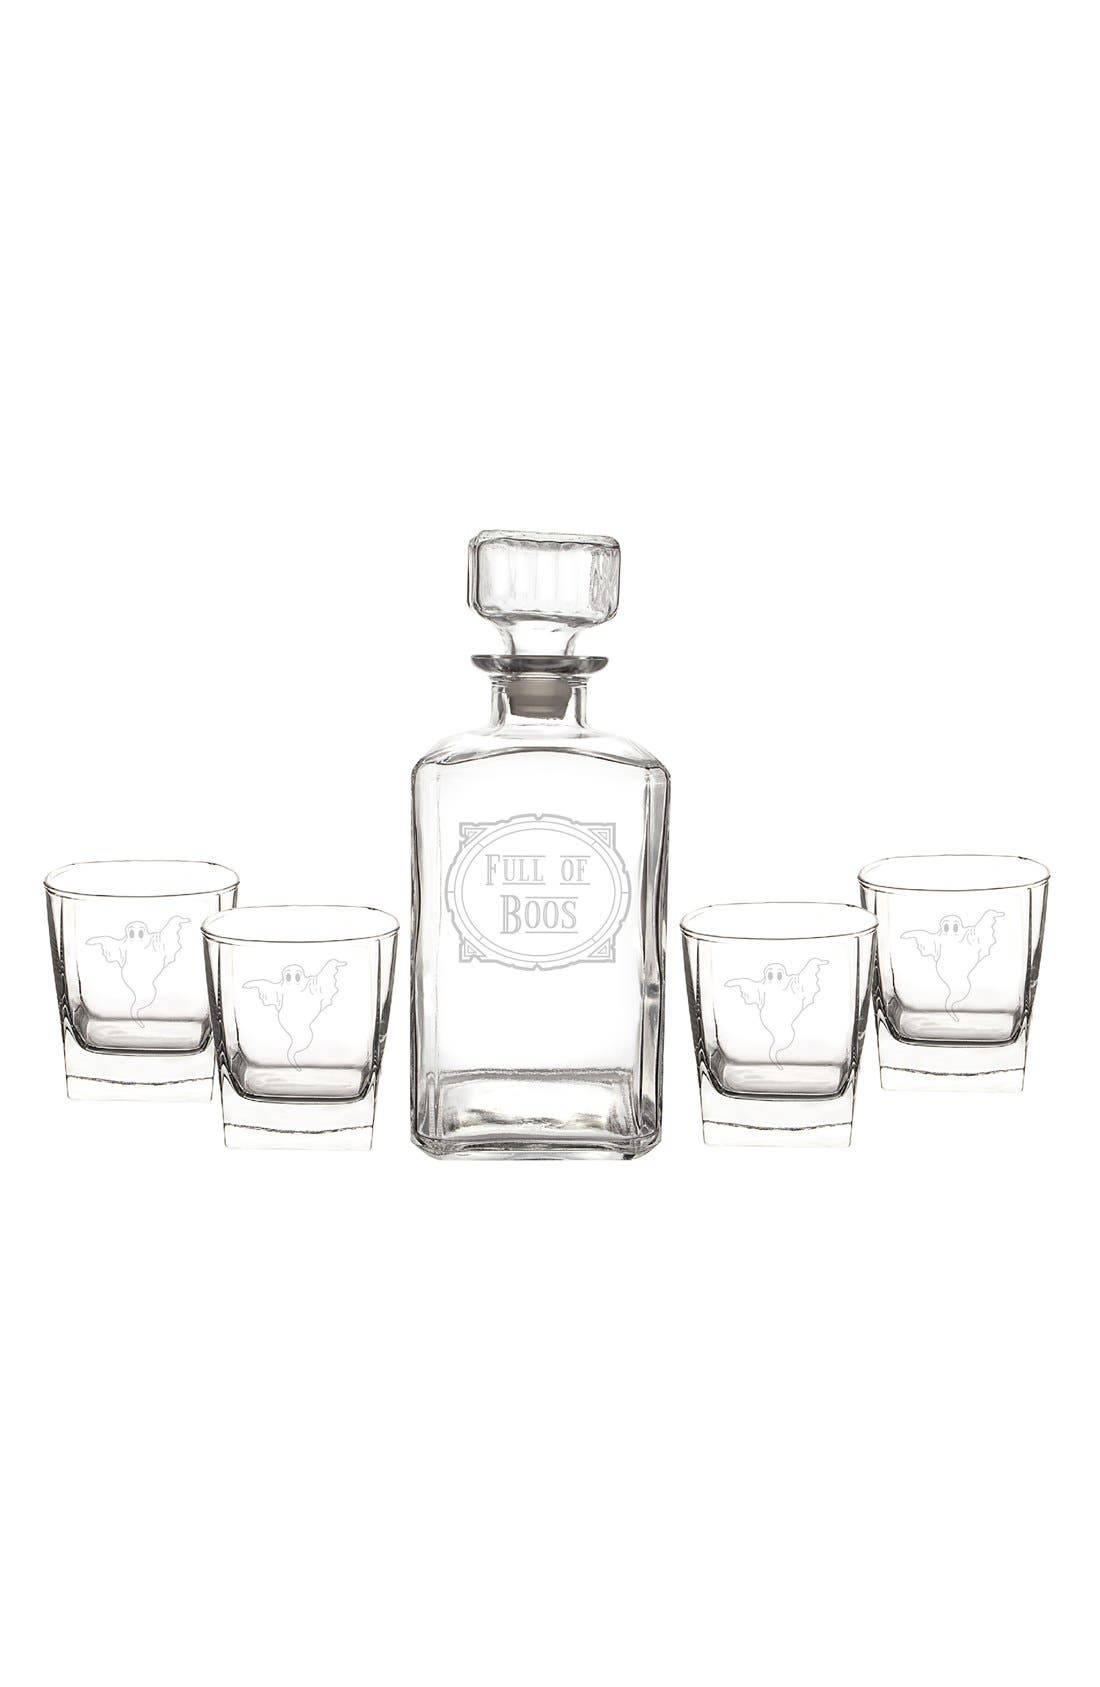 'Full of Boos' 6-Piece Glass Decanter Set,                             Alternate thumbnail 2, color,                             100